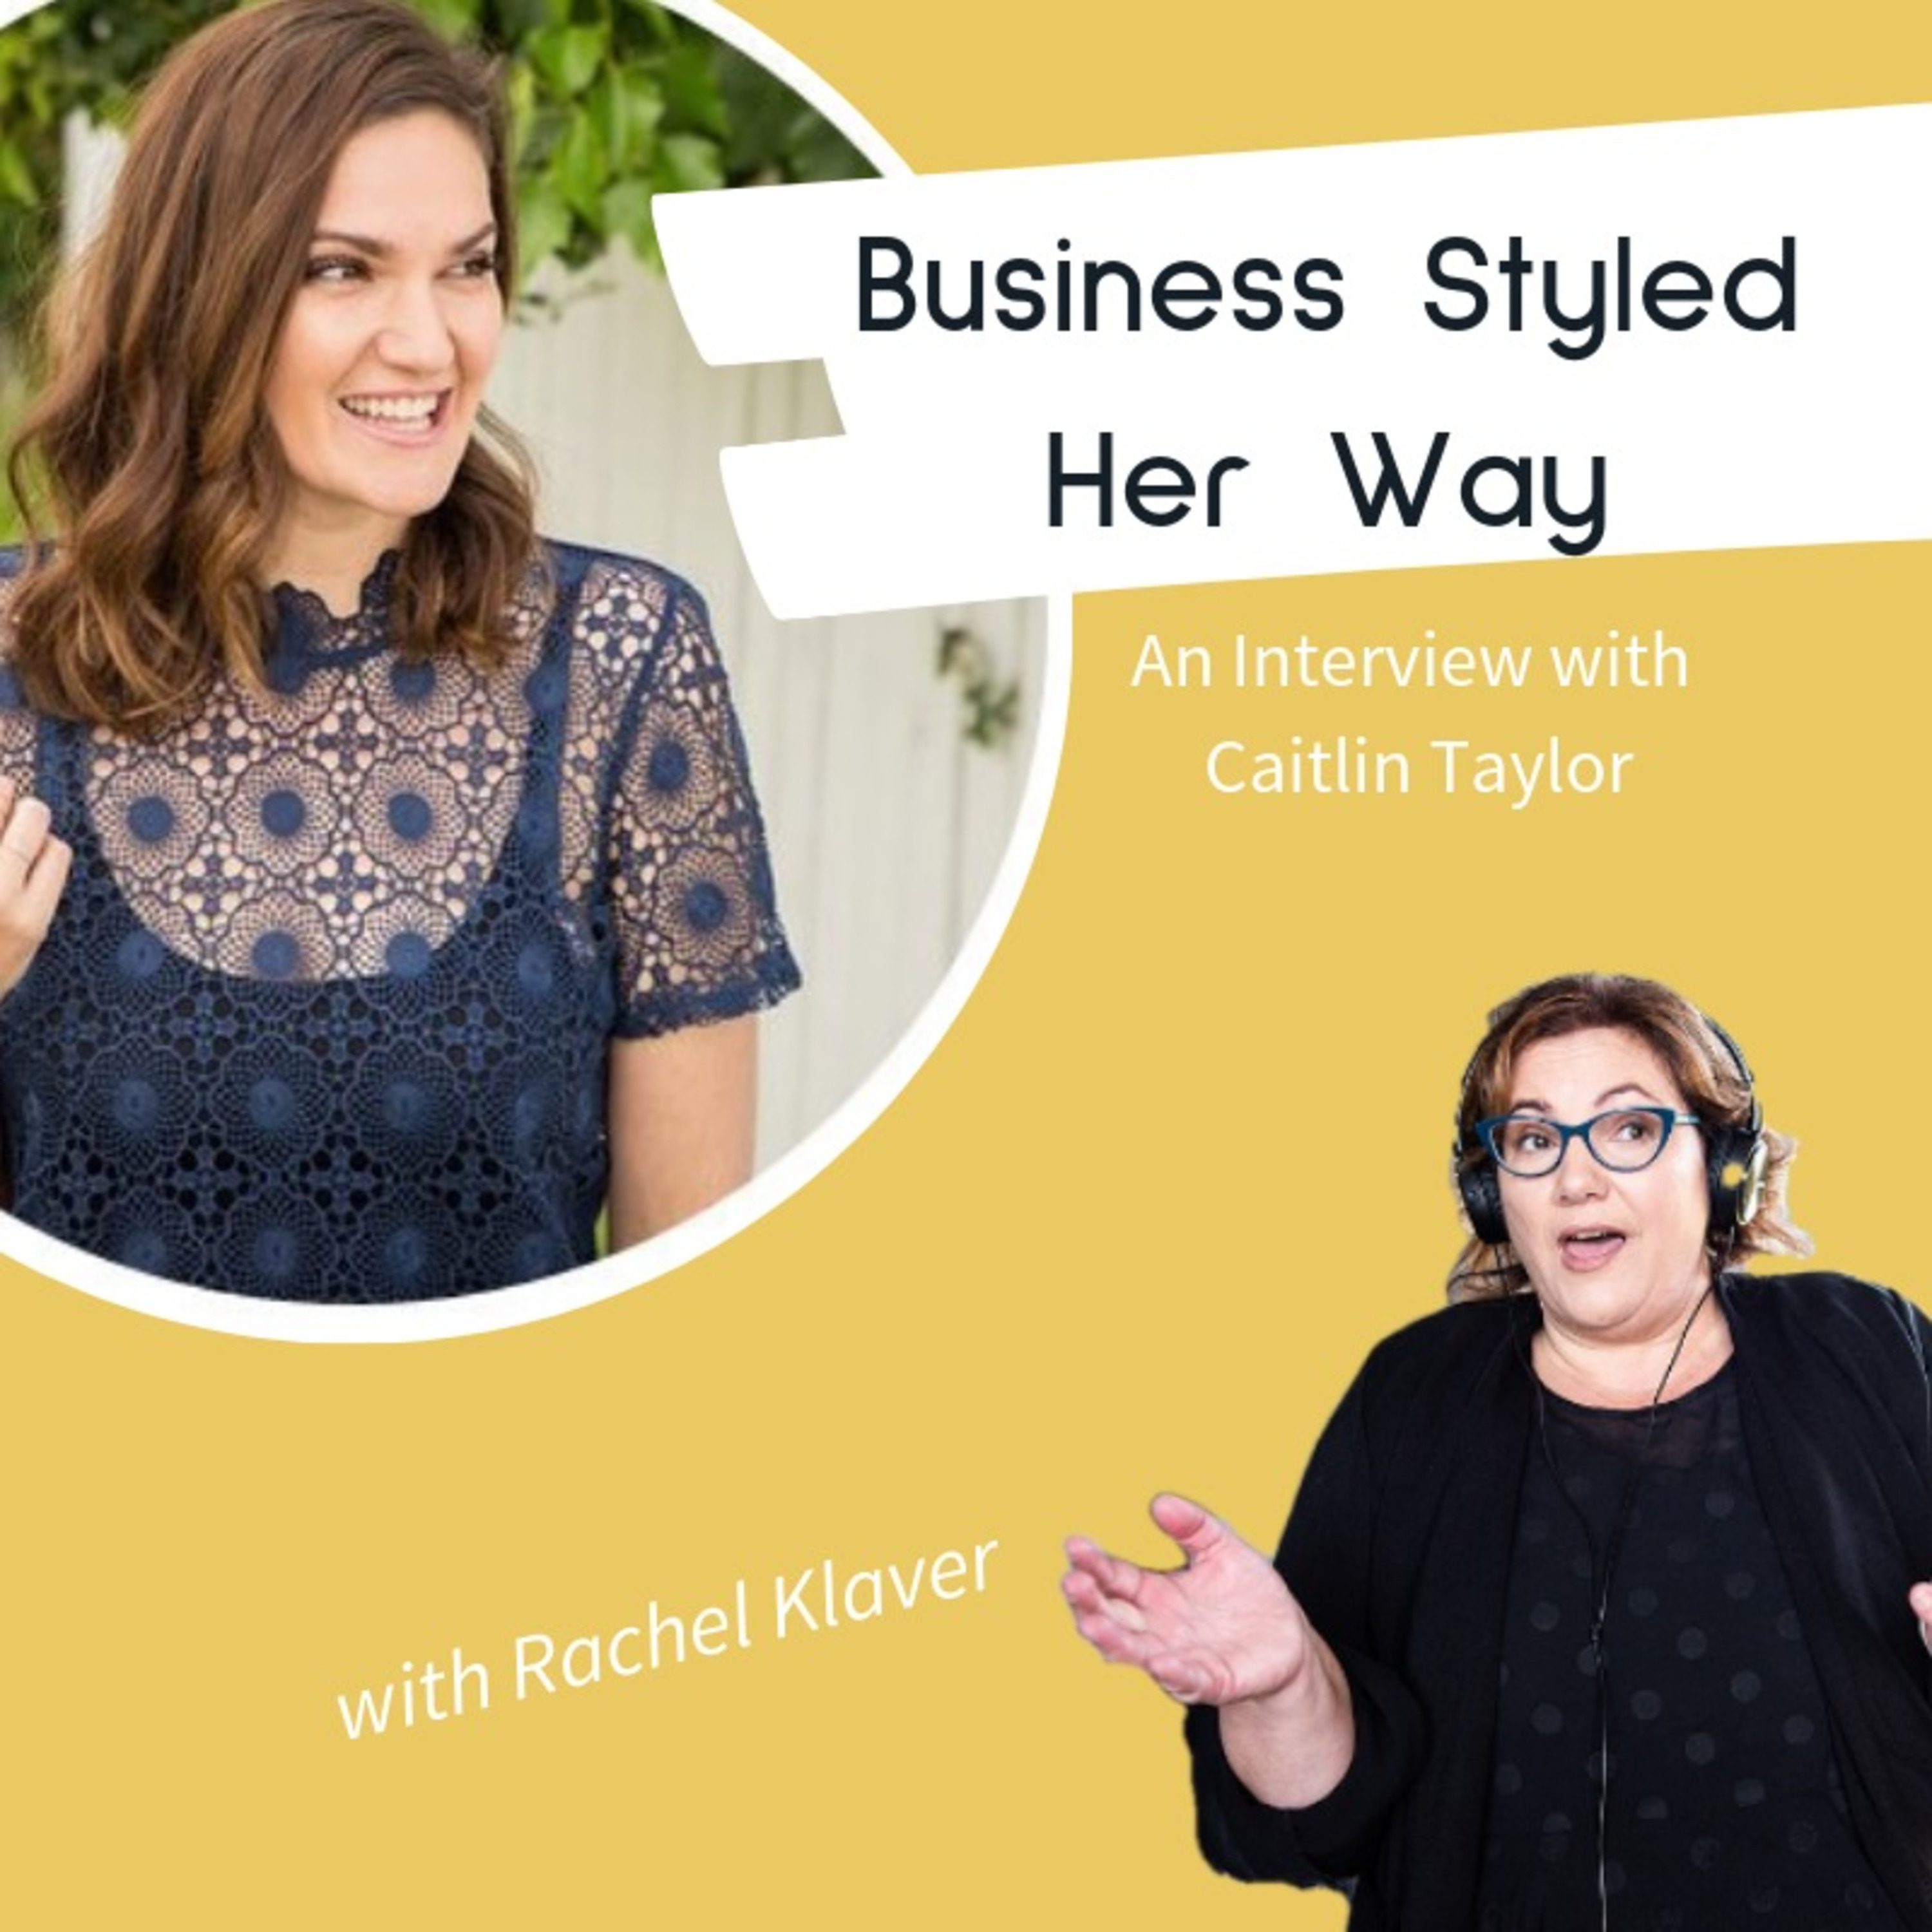 Business Styled Hey Way - an interview with Stylist Caitlin Taylor